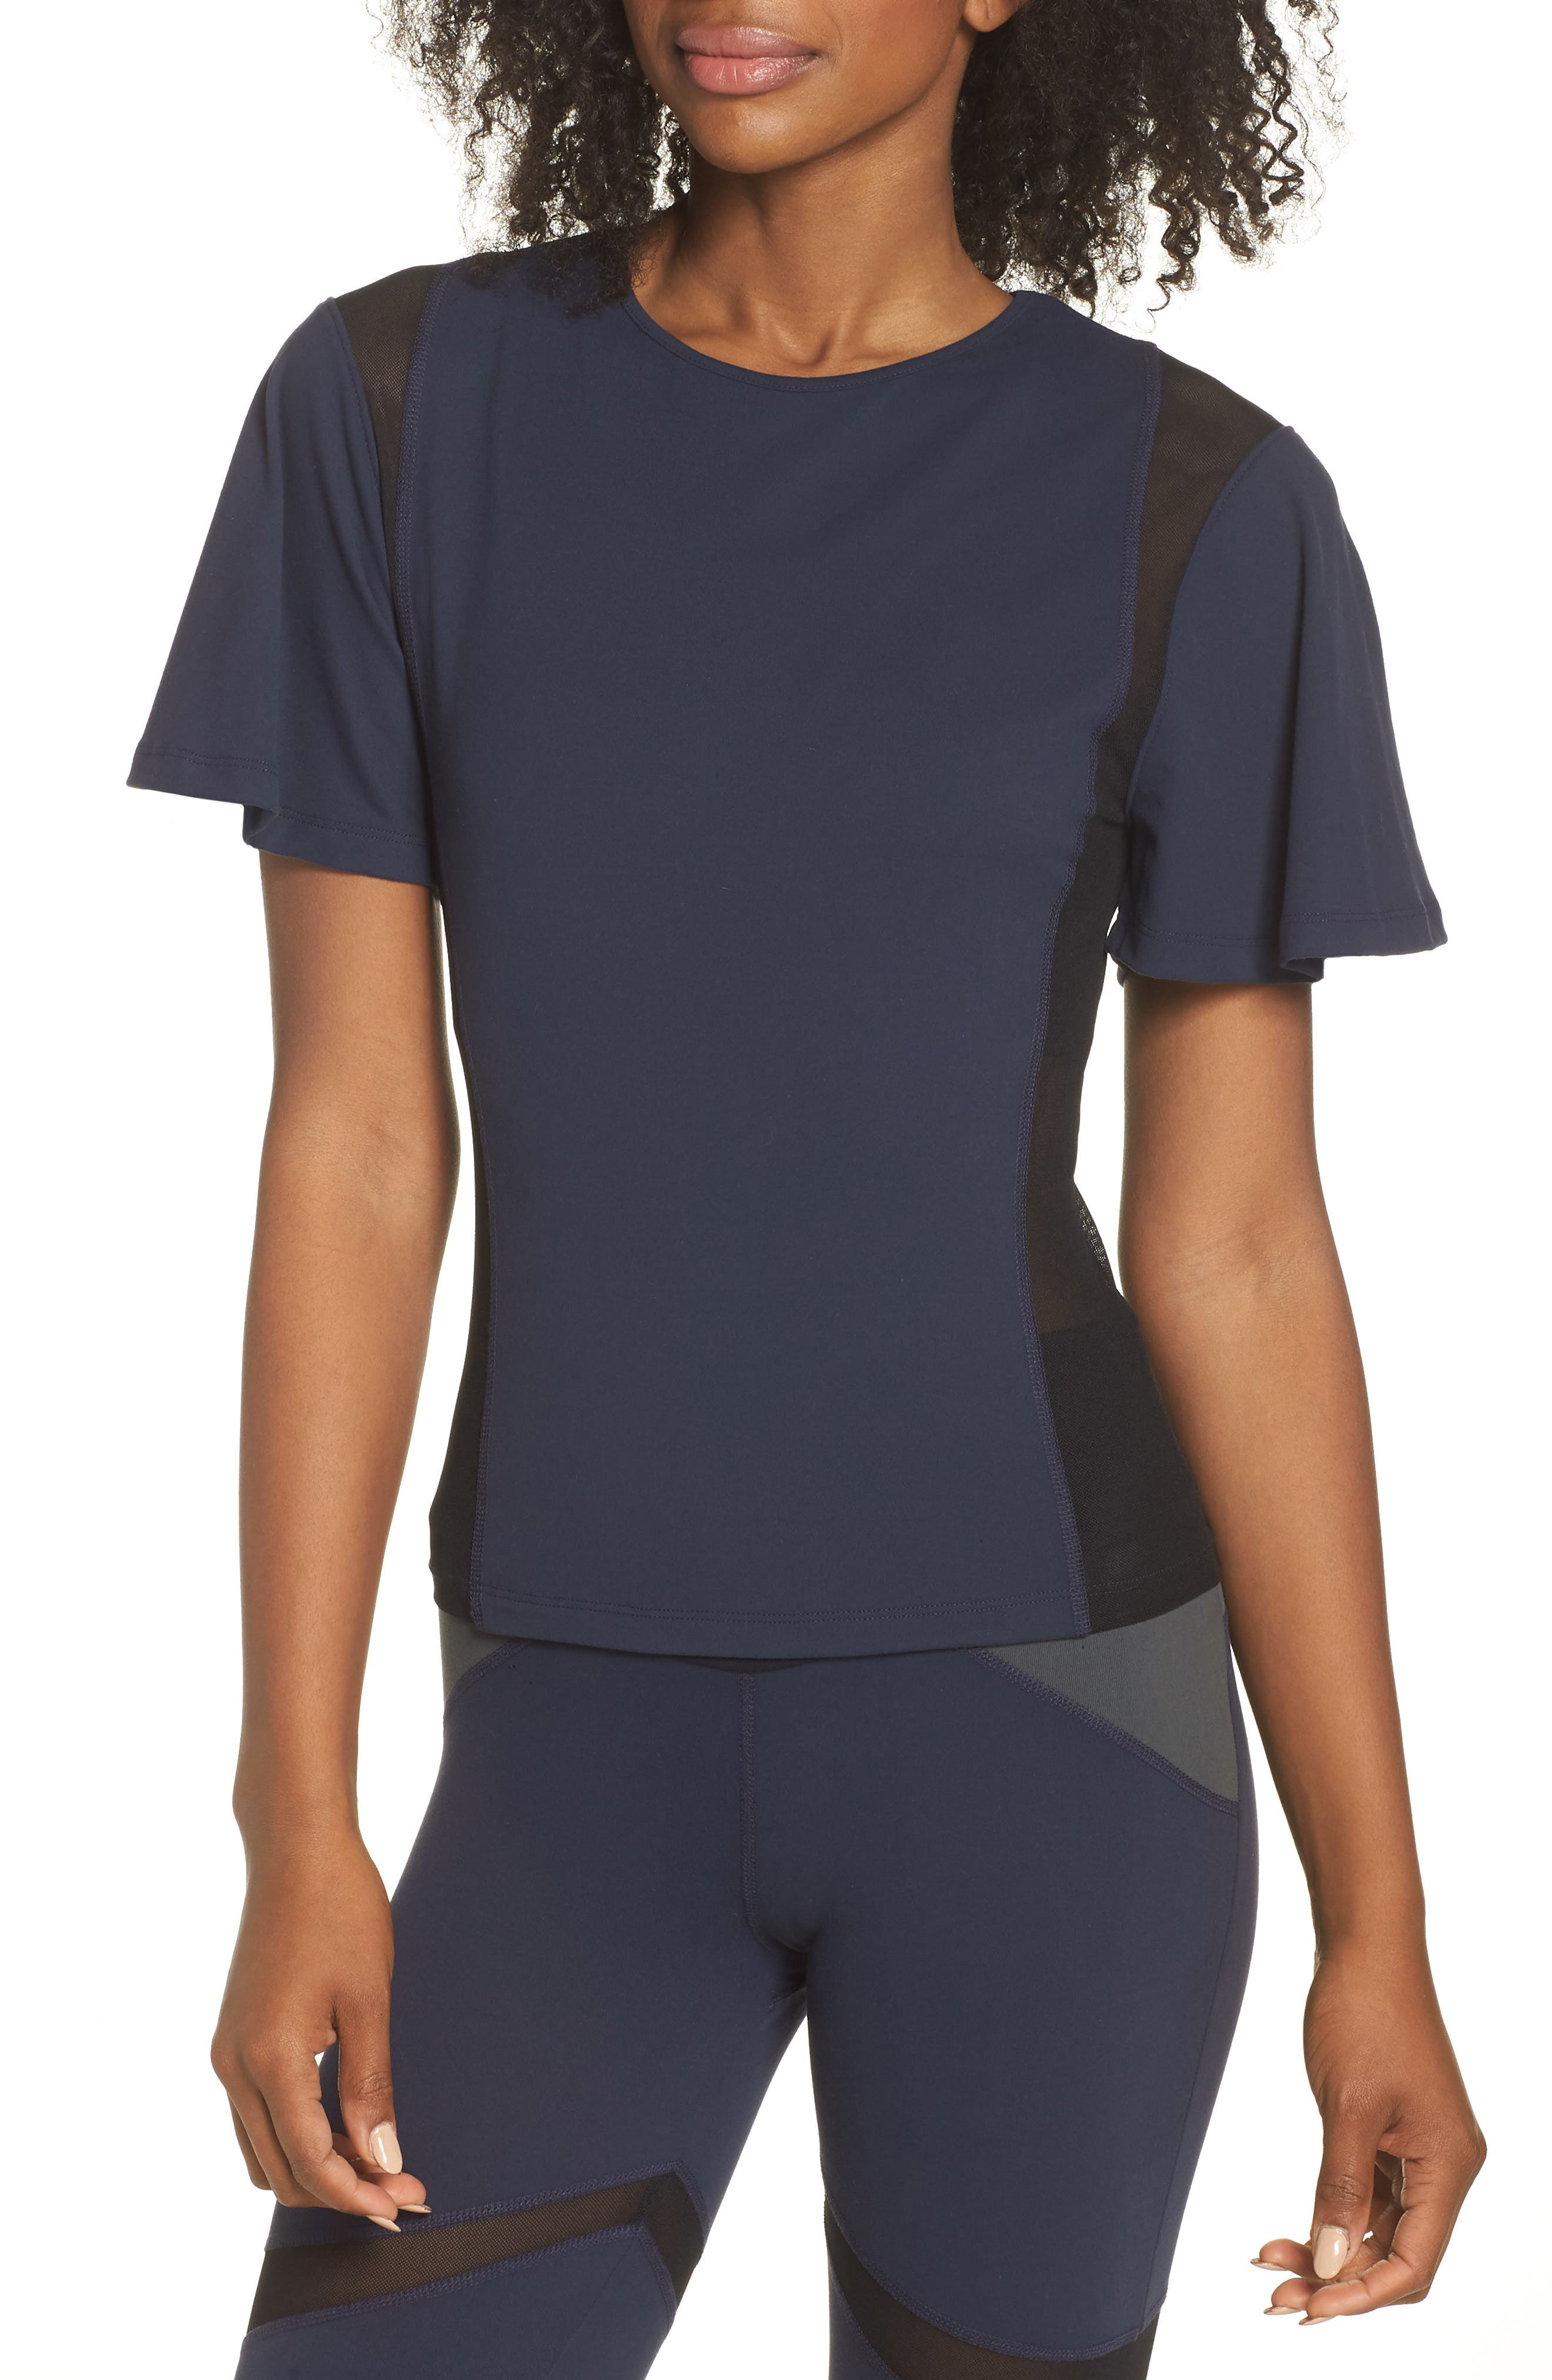 BoomBoom Athletica Wing Sleeve Tee,                             Main thumbnail 1, color,                             400